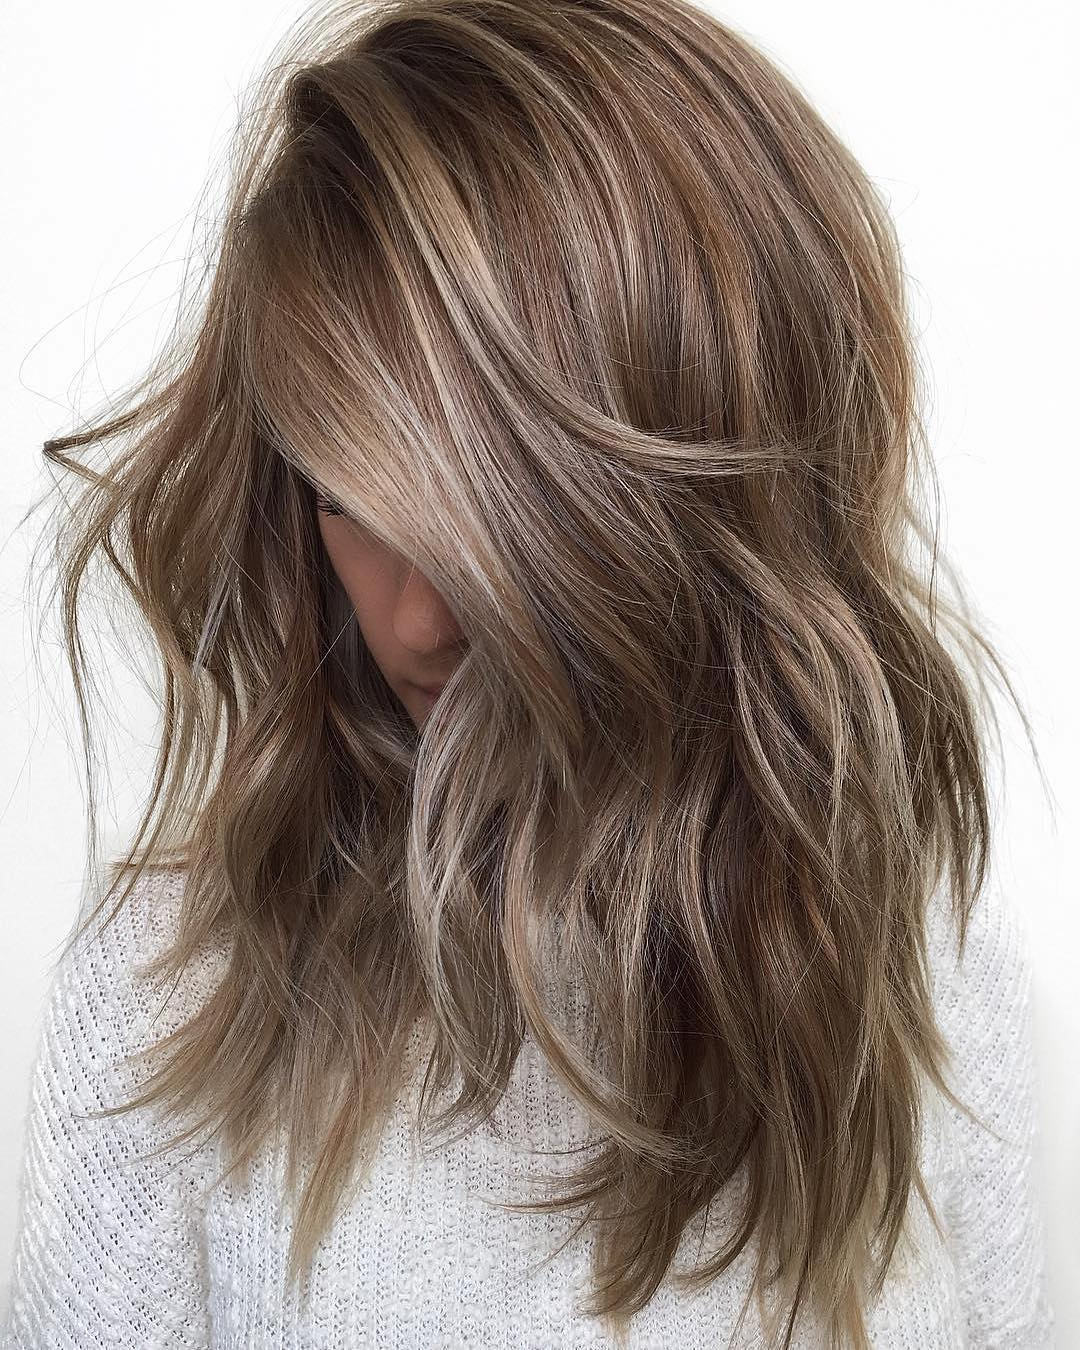 10 Medium Length Hair Color Ideas 2019 With Trendy Medium Hairstyles And Colors (View 1 of 20)